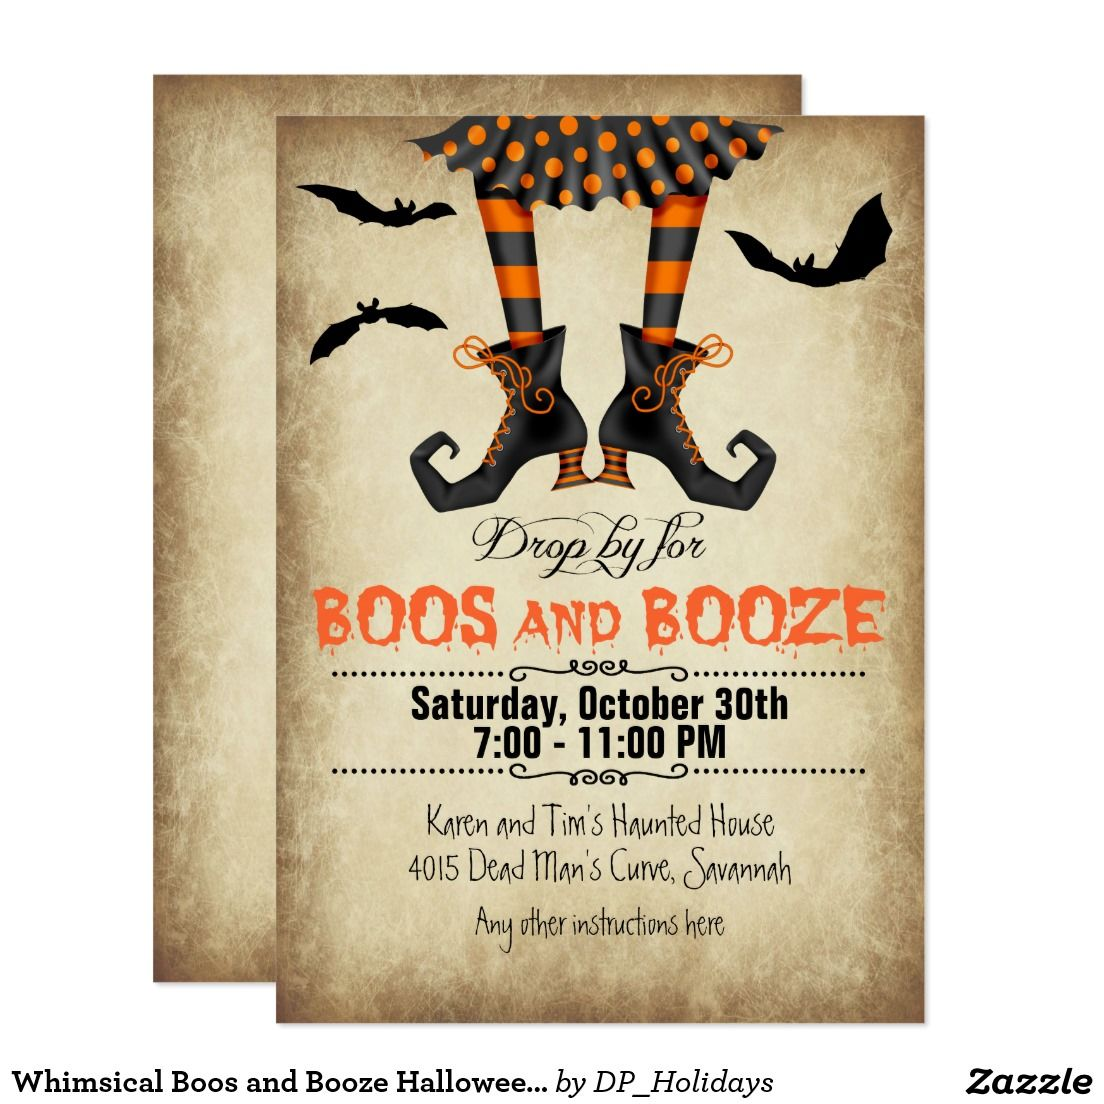 Whimsical Boos and Booze Halloween Party Card | Invitations ...